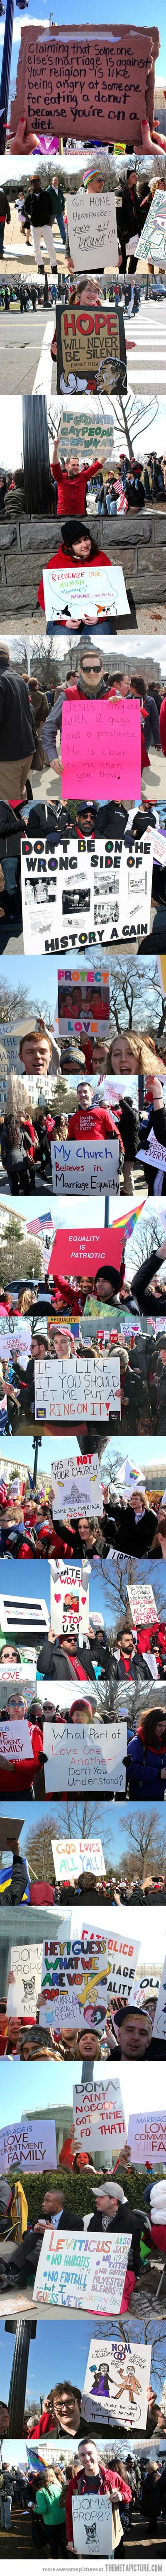 best images about human rights nelson mandela best signs against anti gay marriage laws